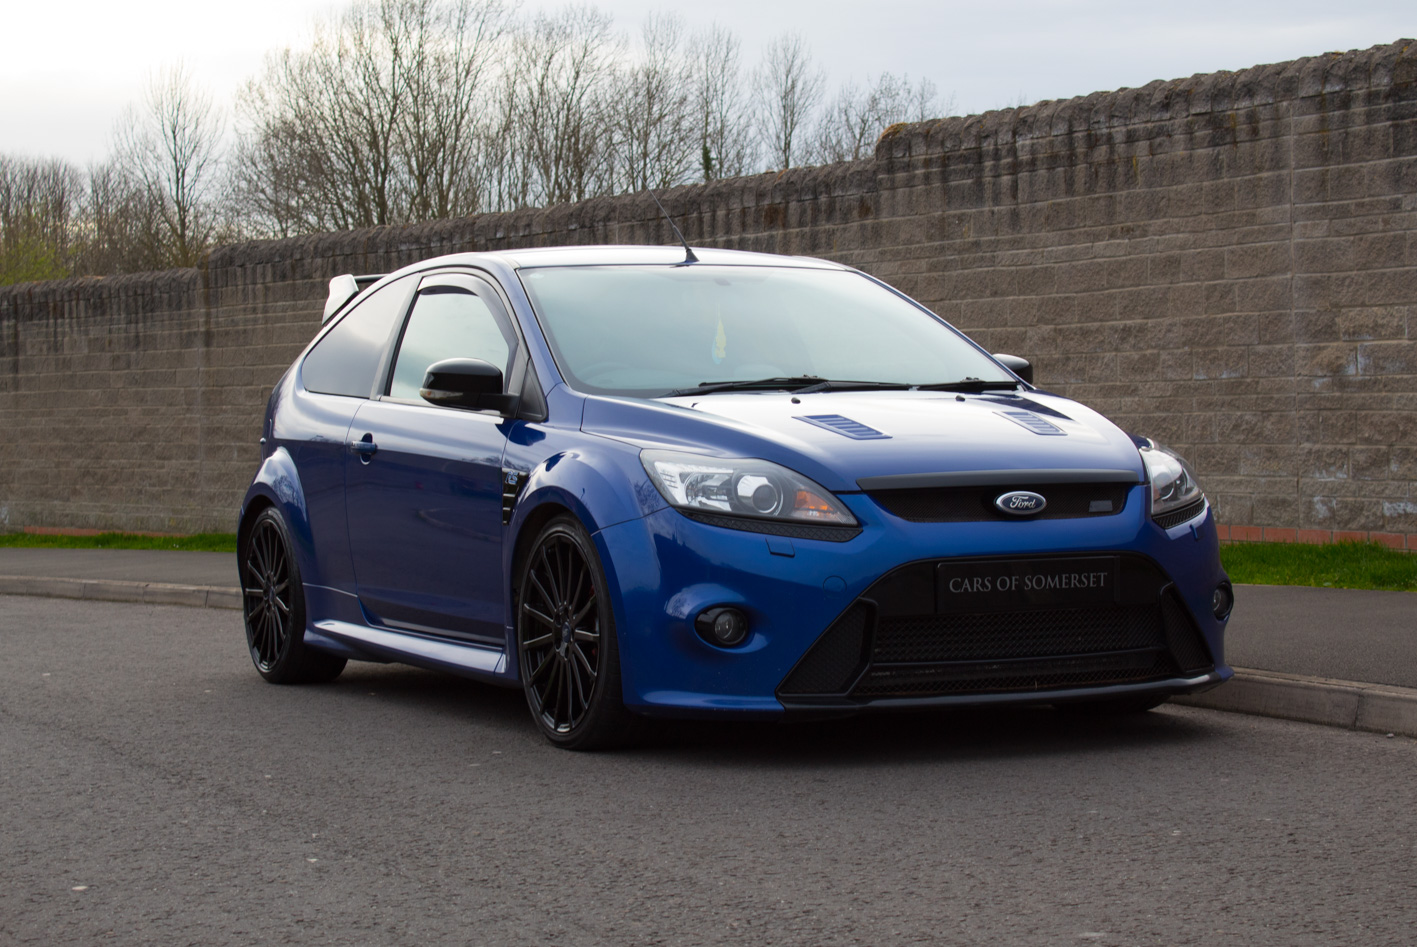 Sold 2009 Ford Focus Rs Blue Cars Of Somerset